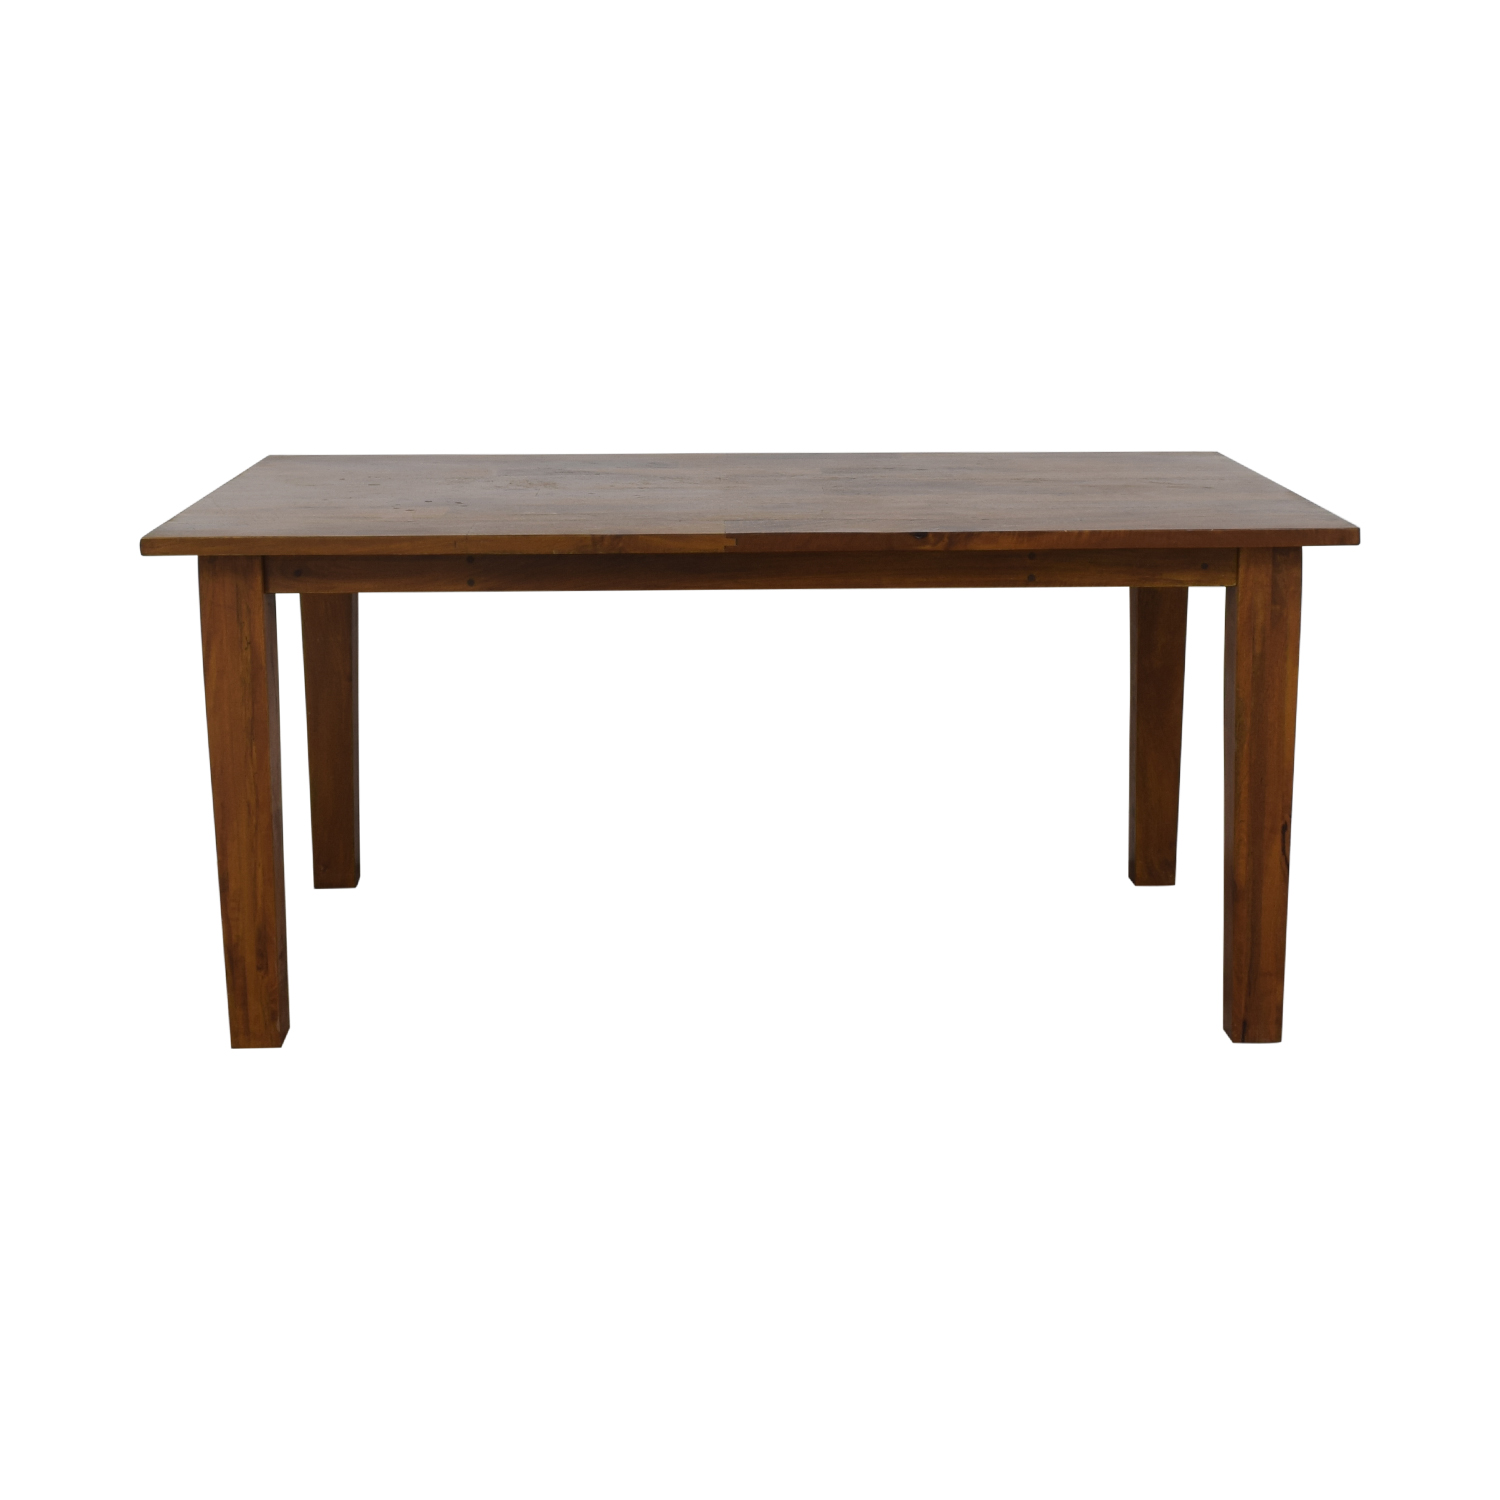 Crate & Barrel Crate & Barrel Basque Honey Dining Table discount